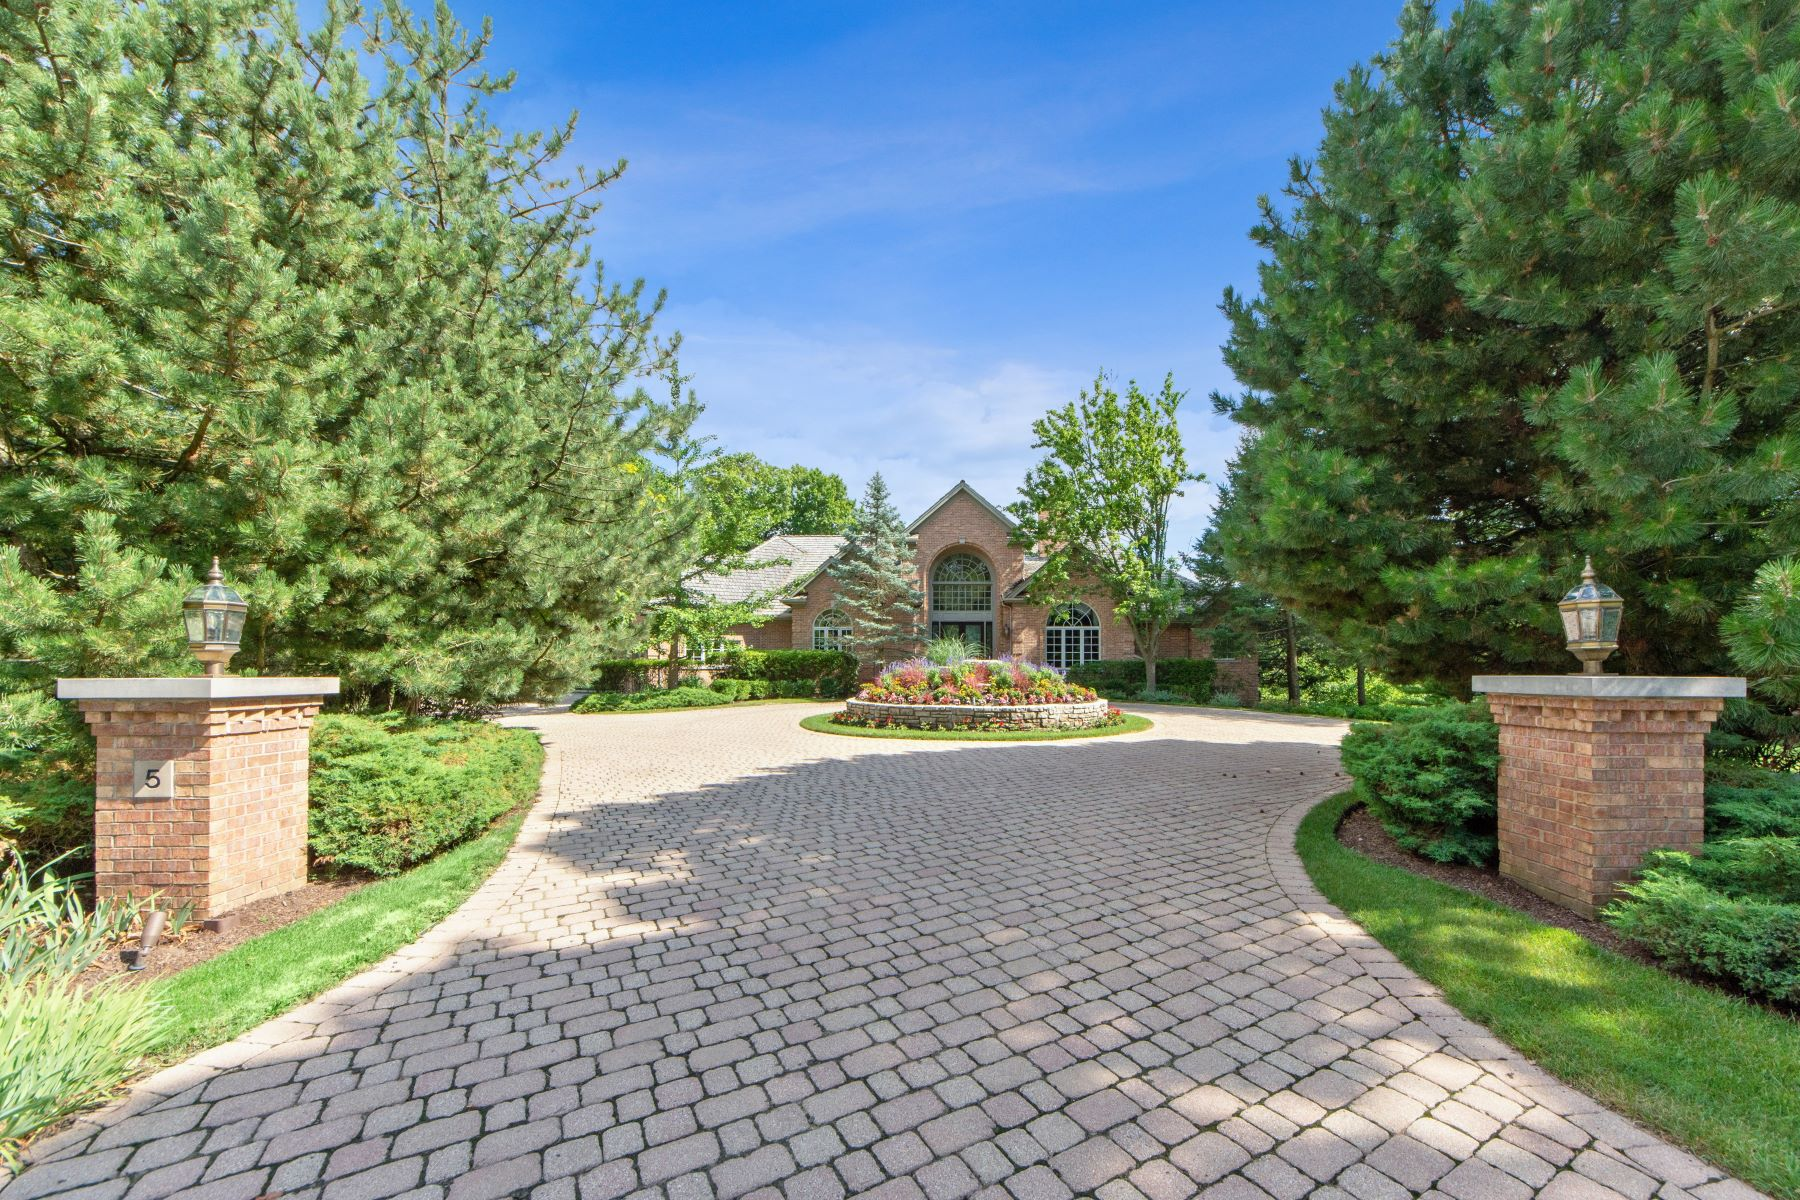 Single Family Homes for Active at Stunning and Spacious Barrington Home 5 Hillburn Court North Barrington, Illinois 60010 United States